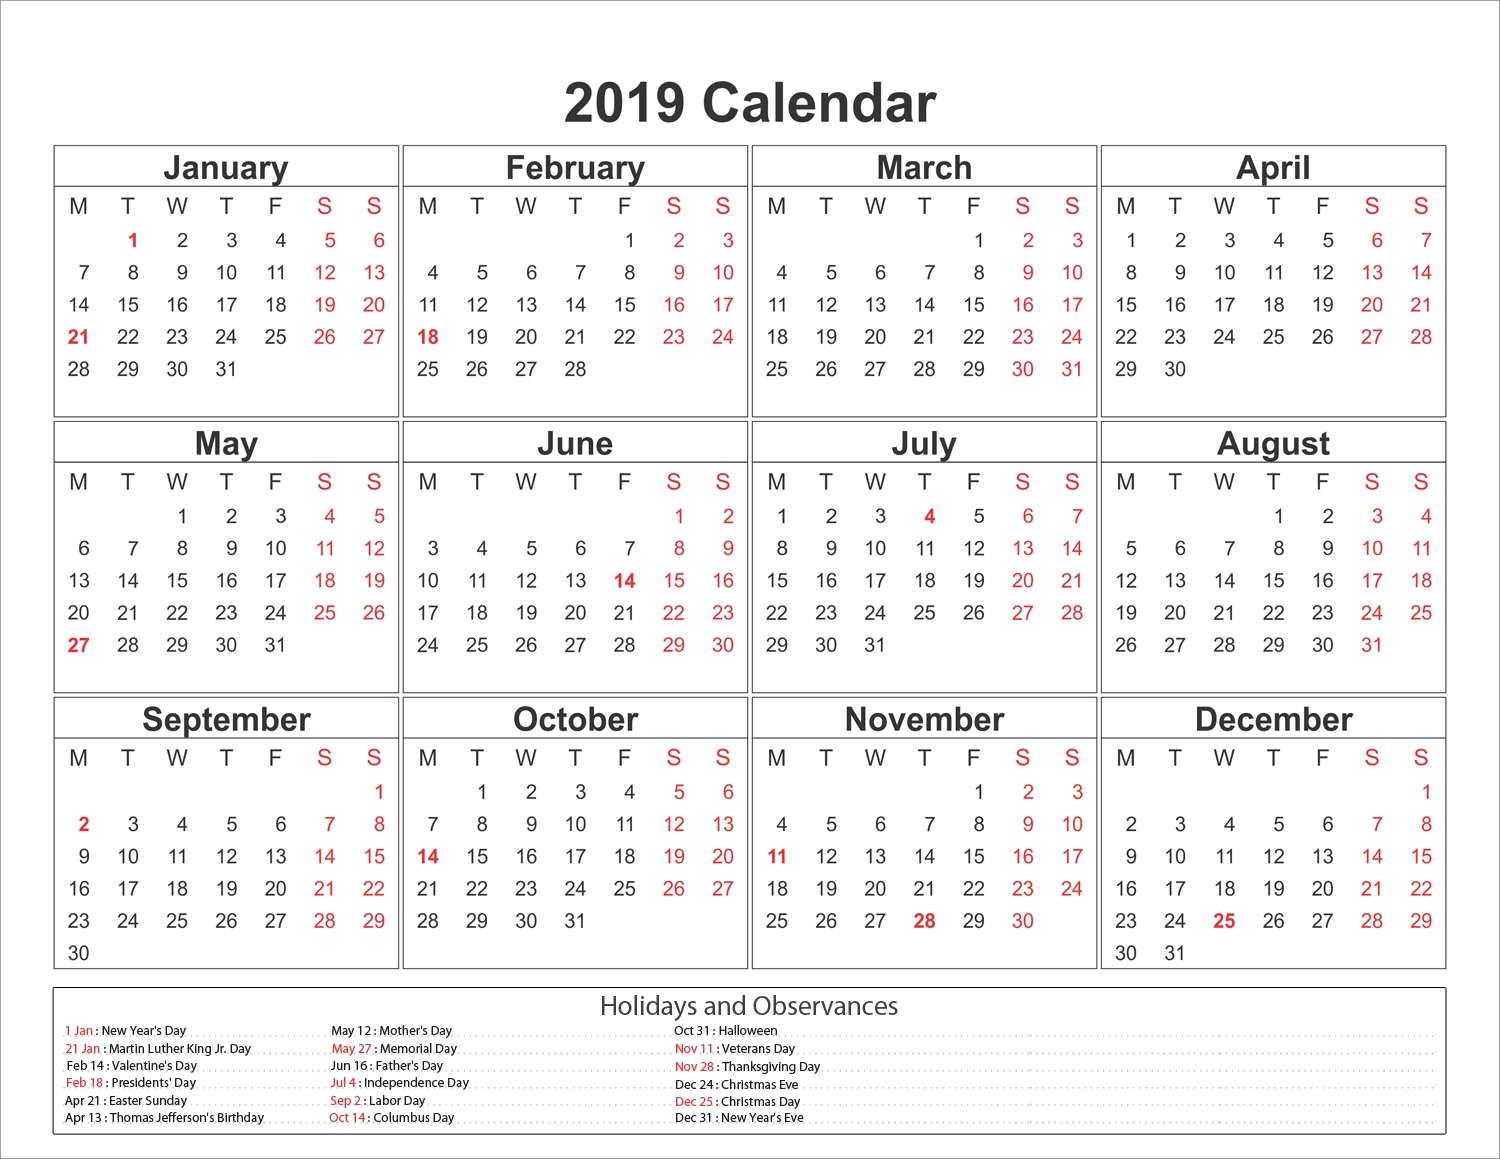 printable yearly printable 2019 calendar pdf template calendar::Download 2019 Printable Calendar